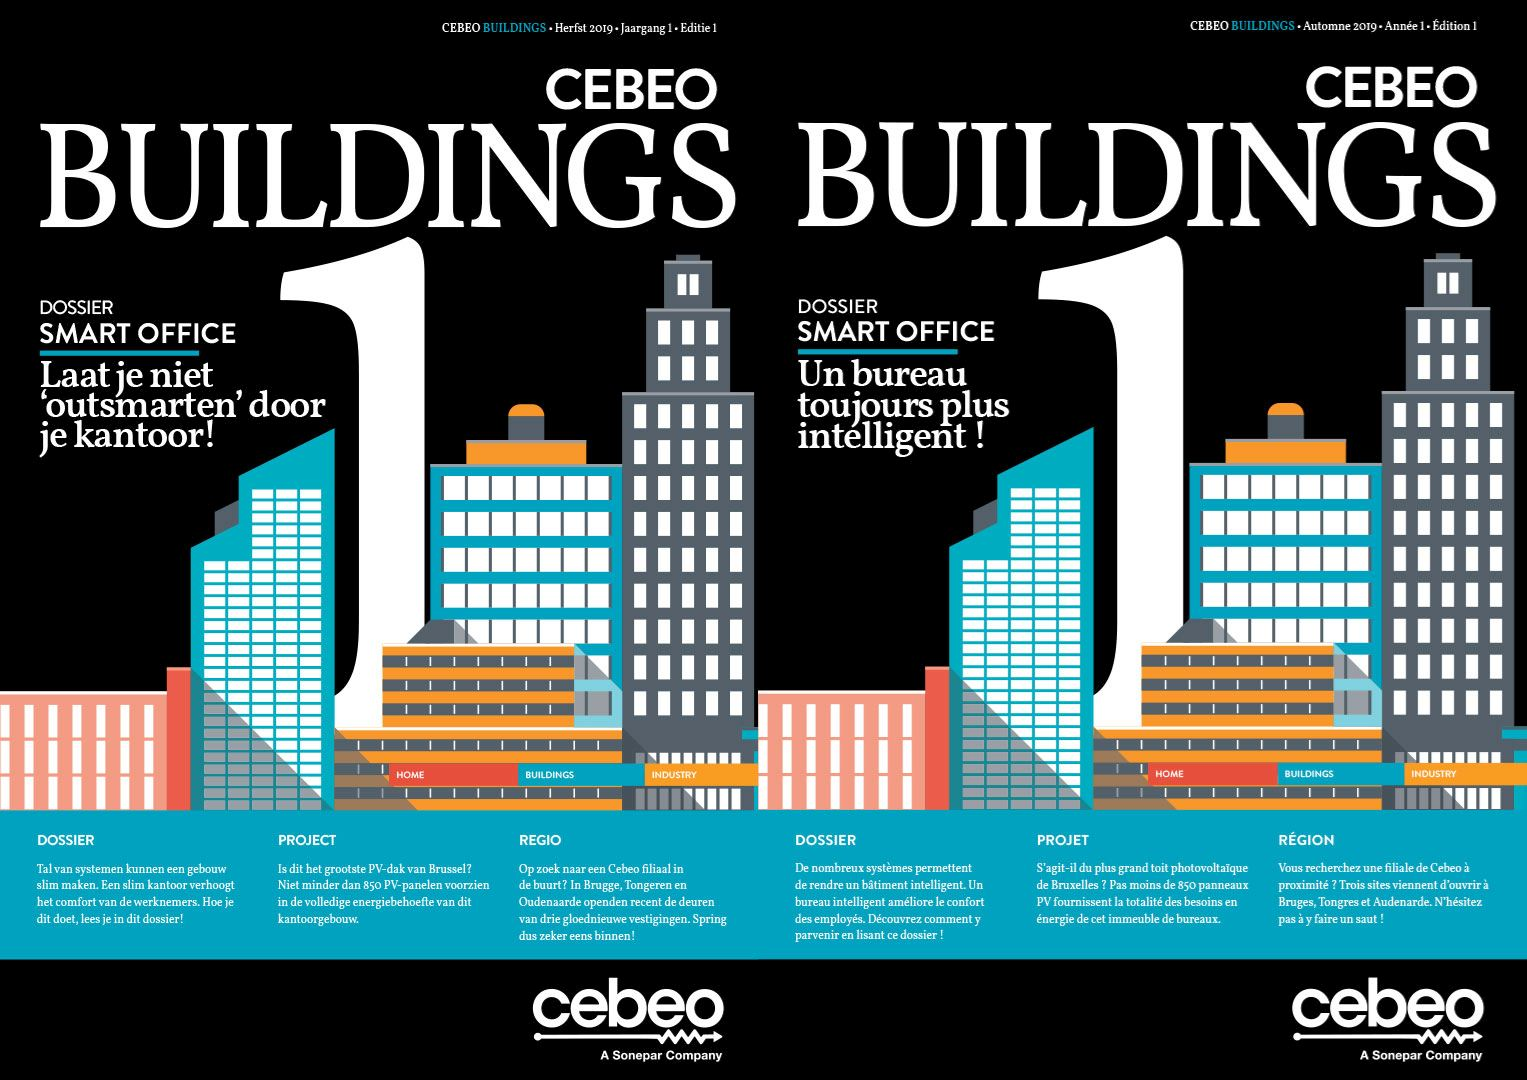 Cebeo Buildings 1